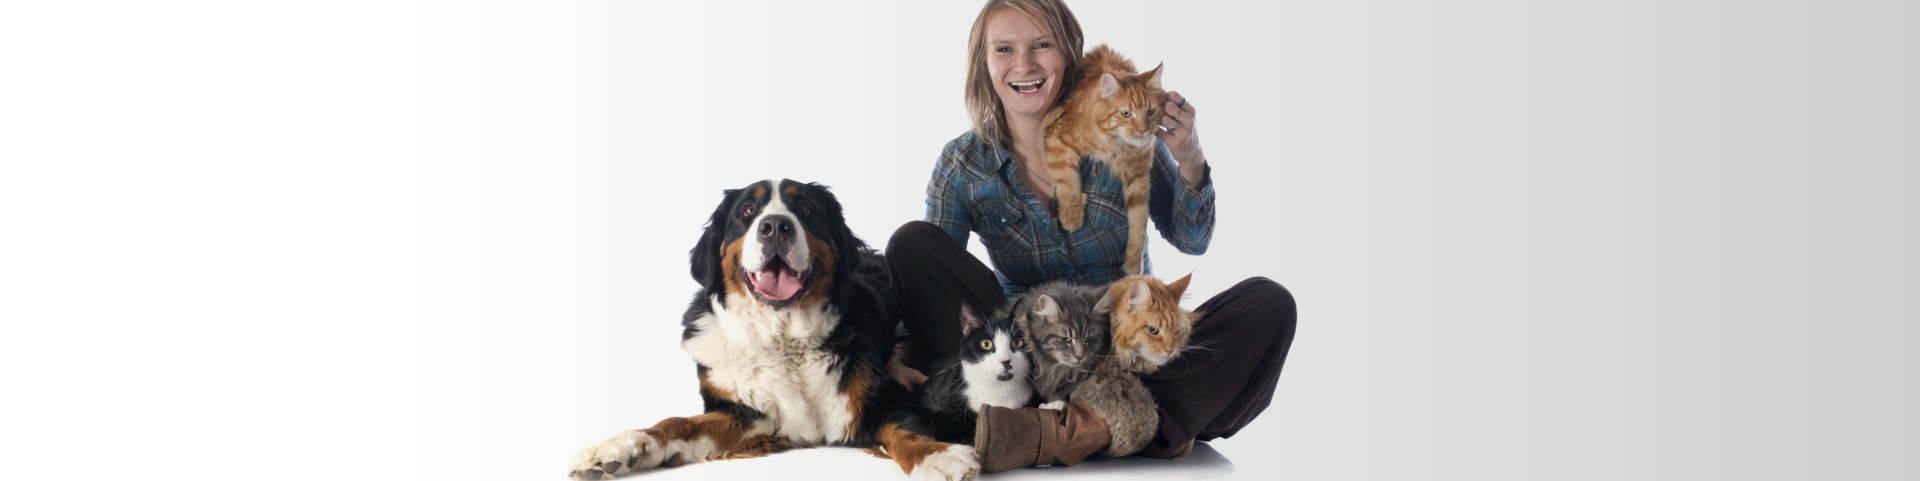 woman and pet in front of white background